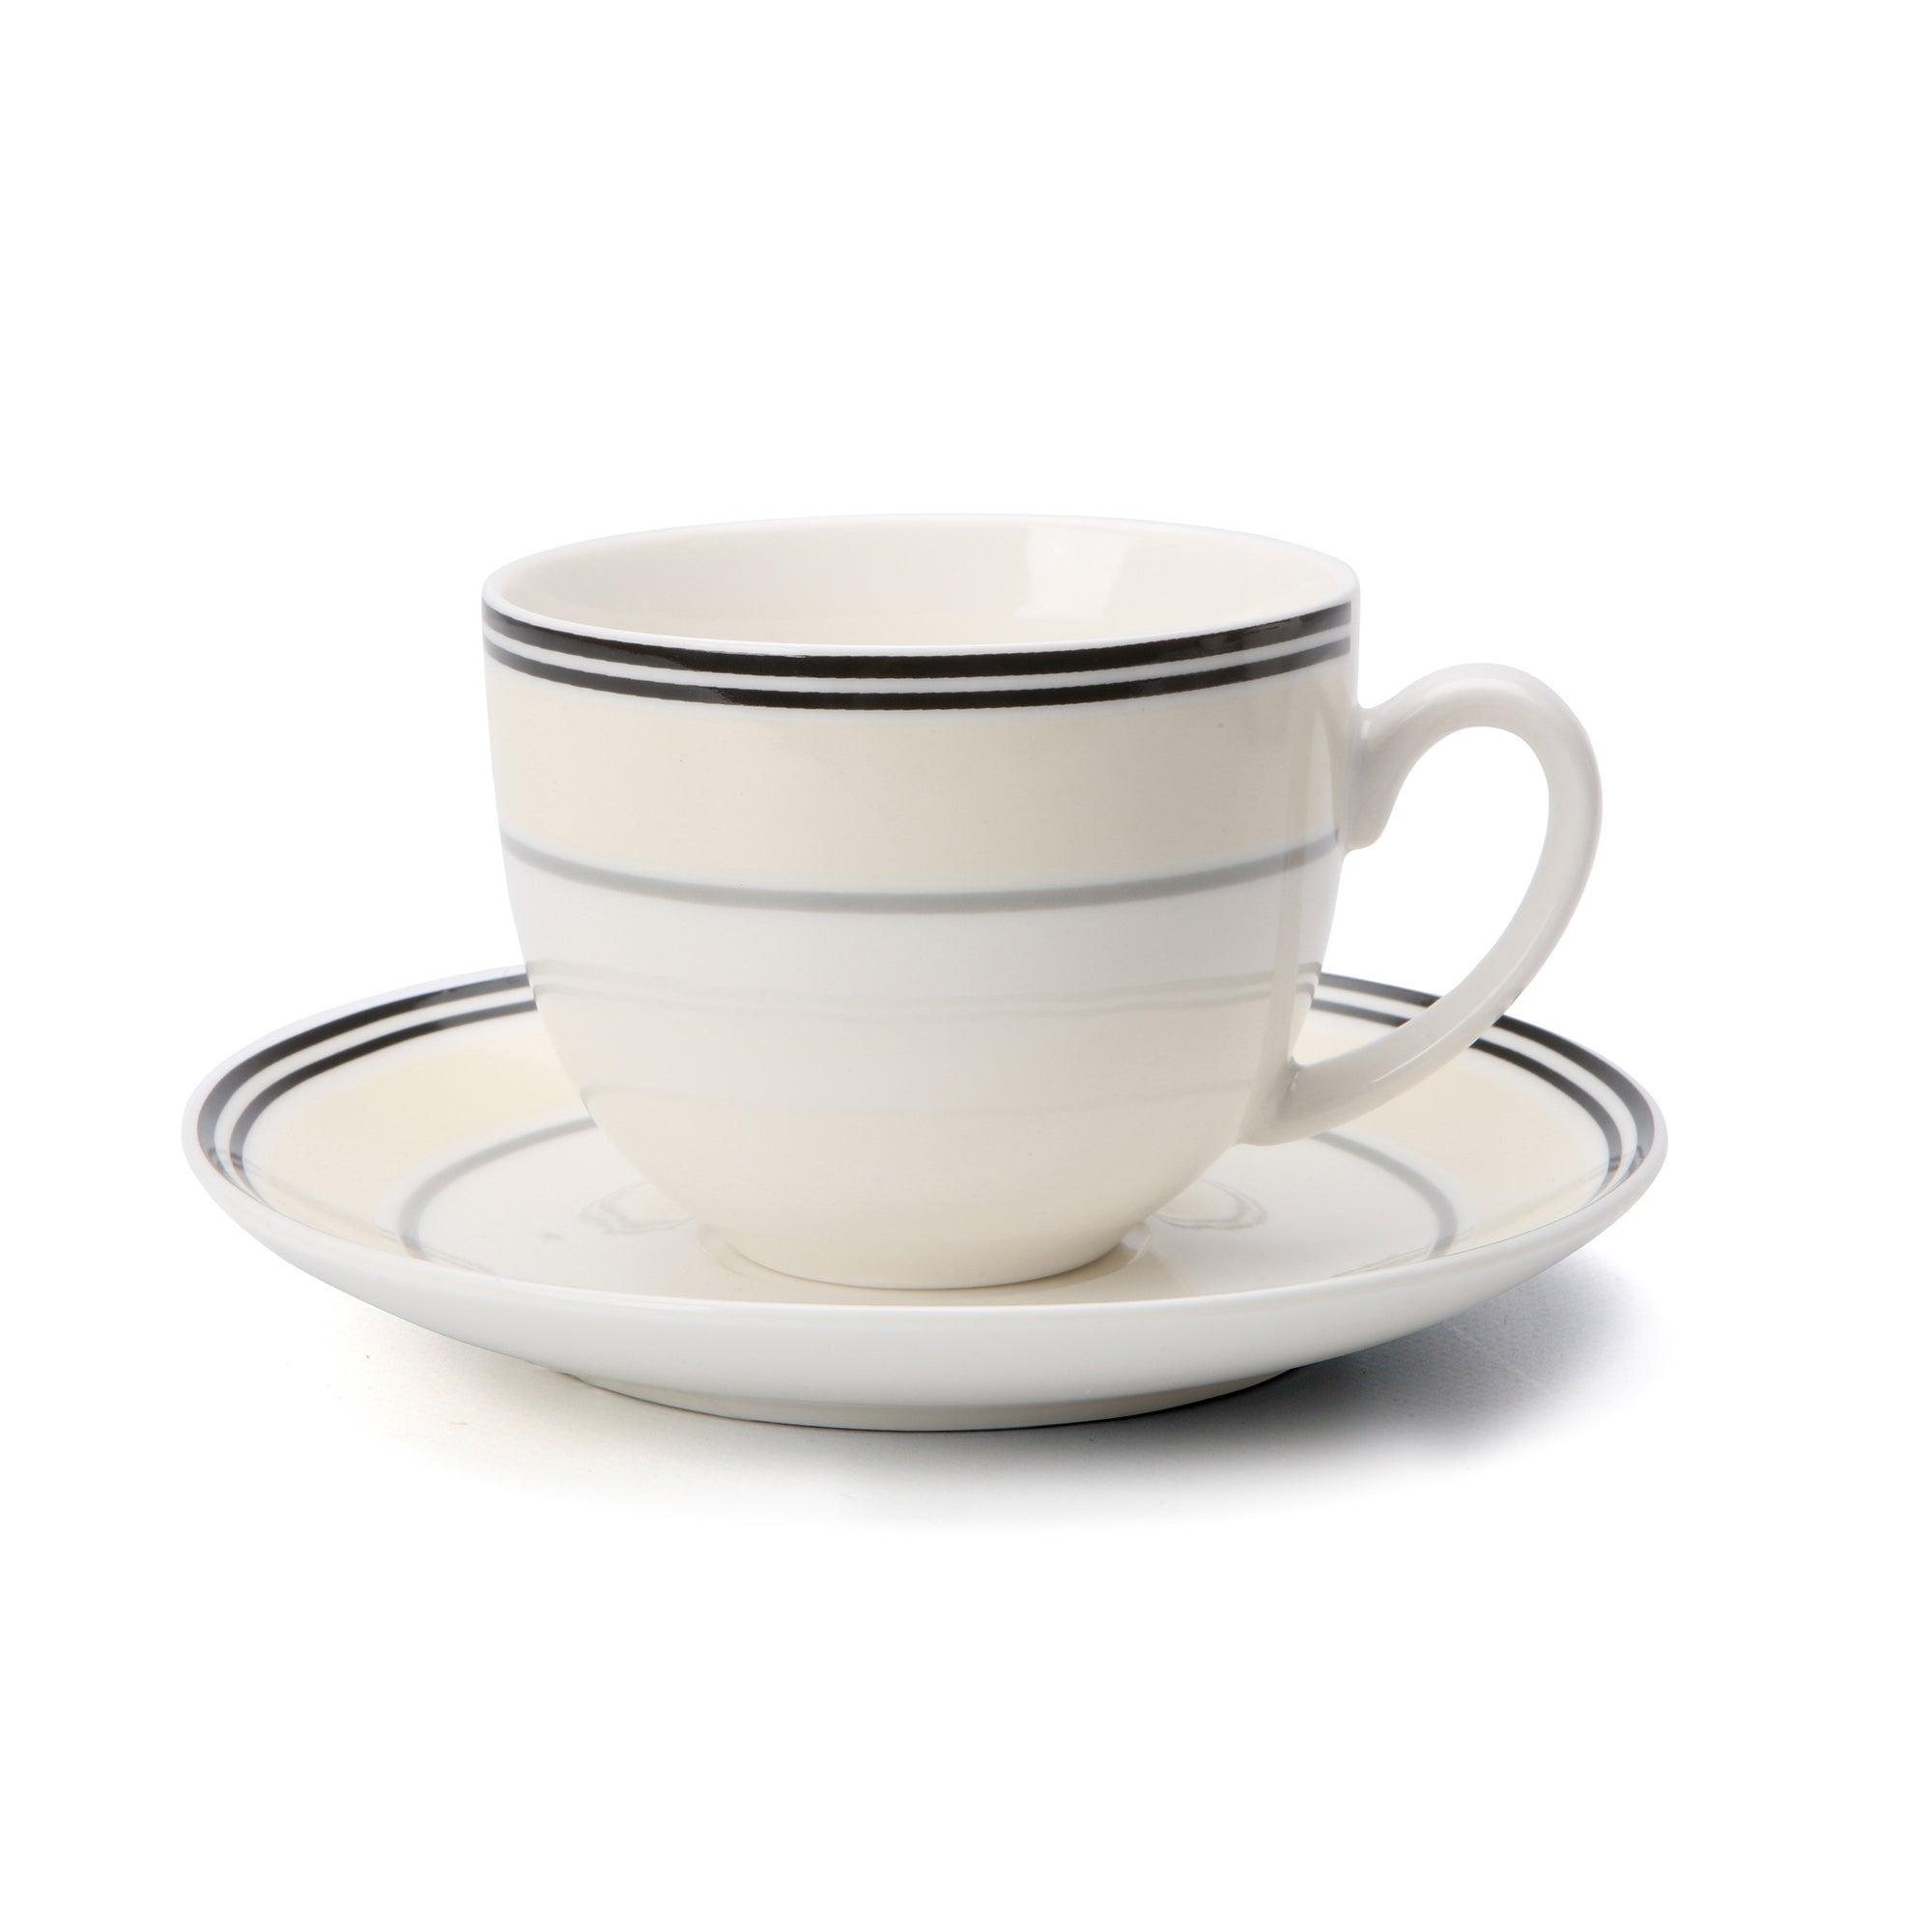 City Stripe Collection Teacup And Saucer